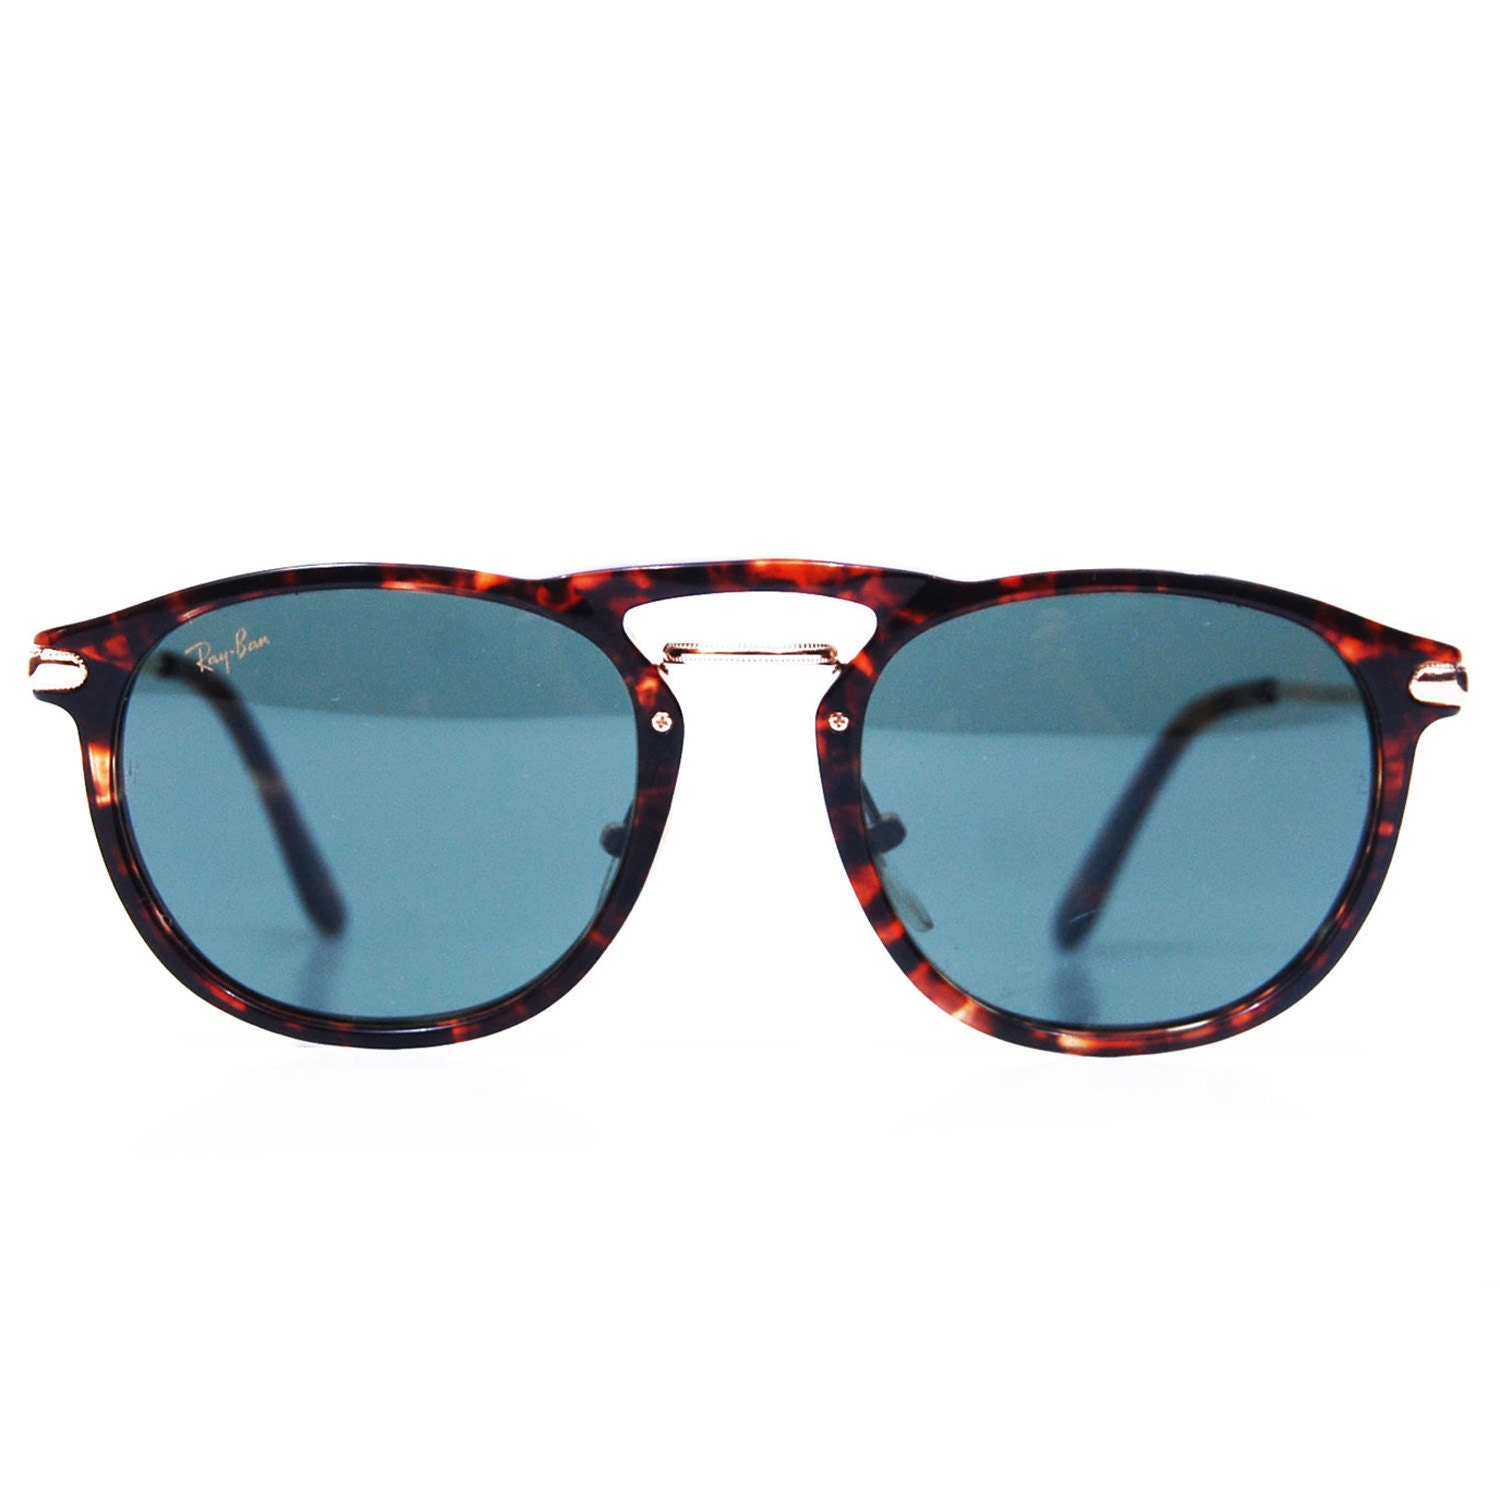 4974f06cacac Ray Ban Sunglasses Old Collections